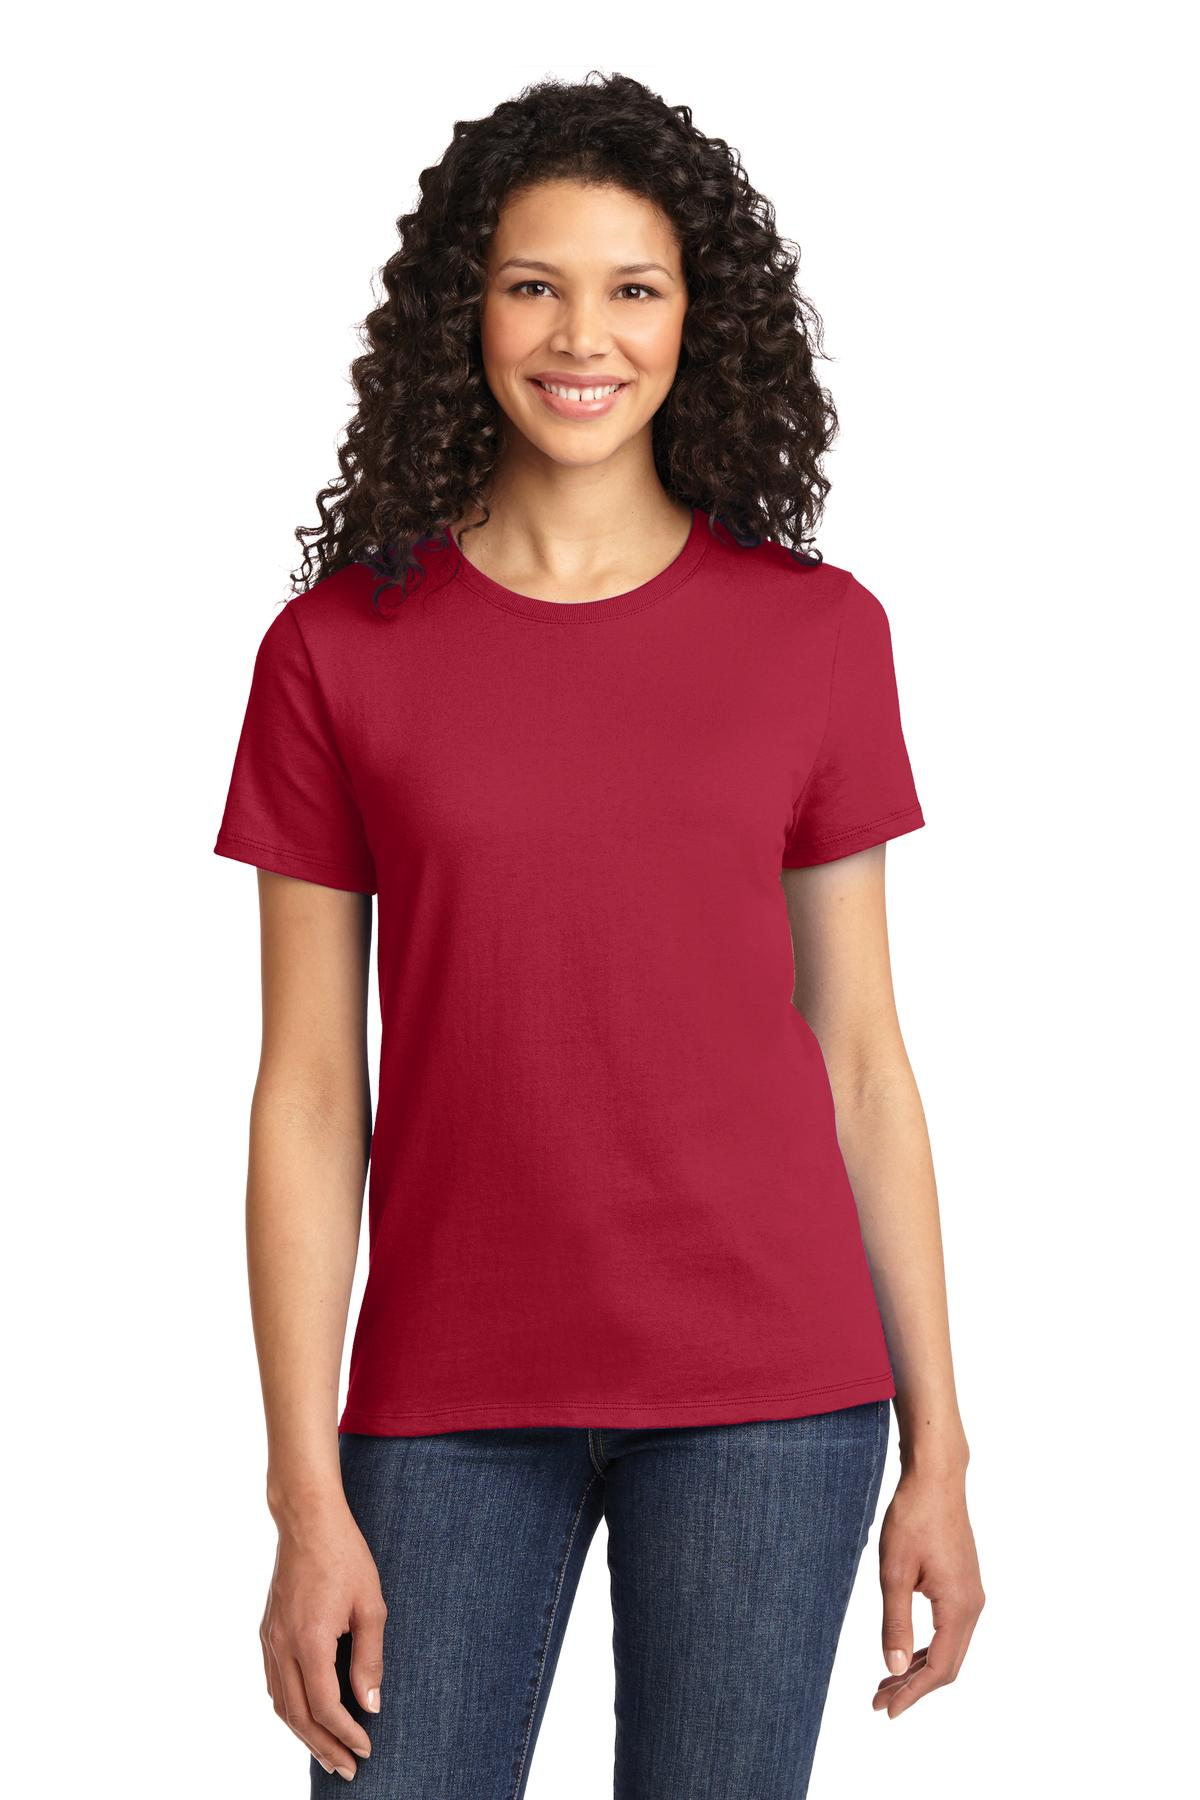 Port & Company LPC61 Ladies Essential Tee - Red - HIT A Double